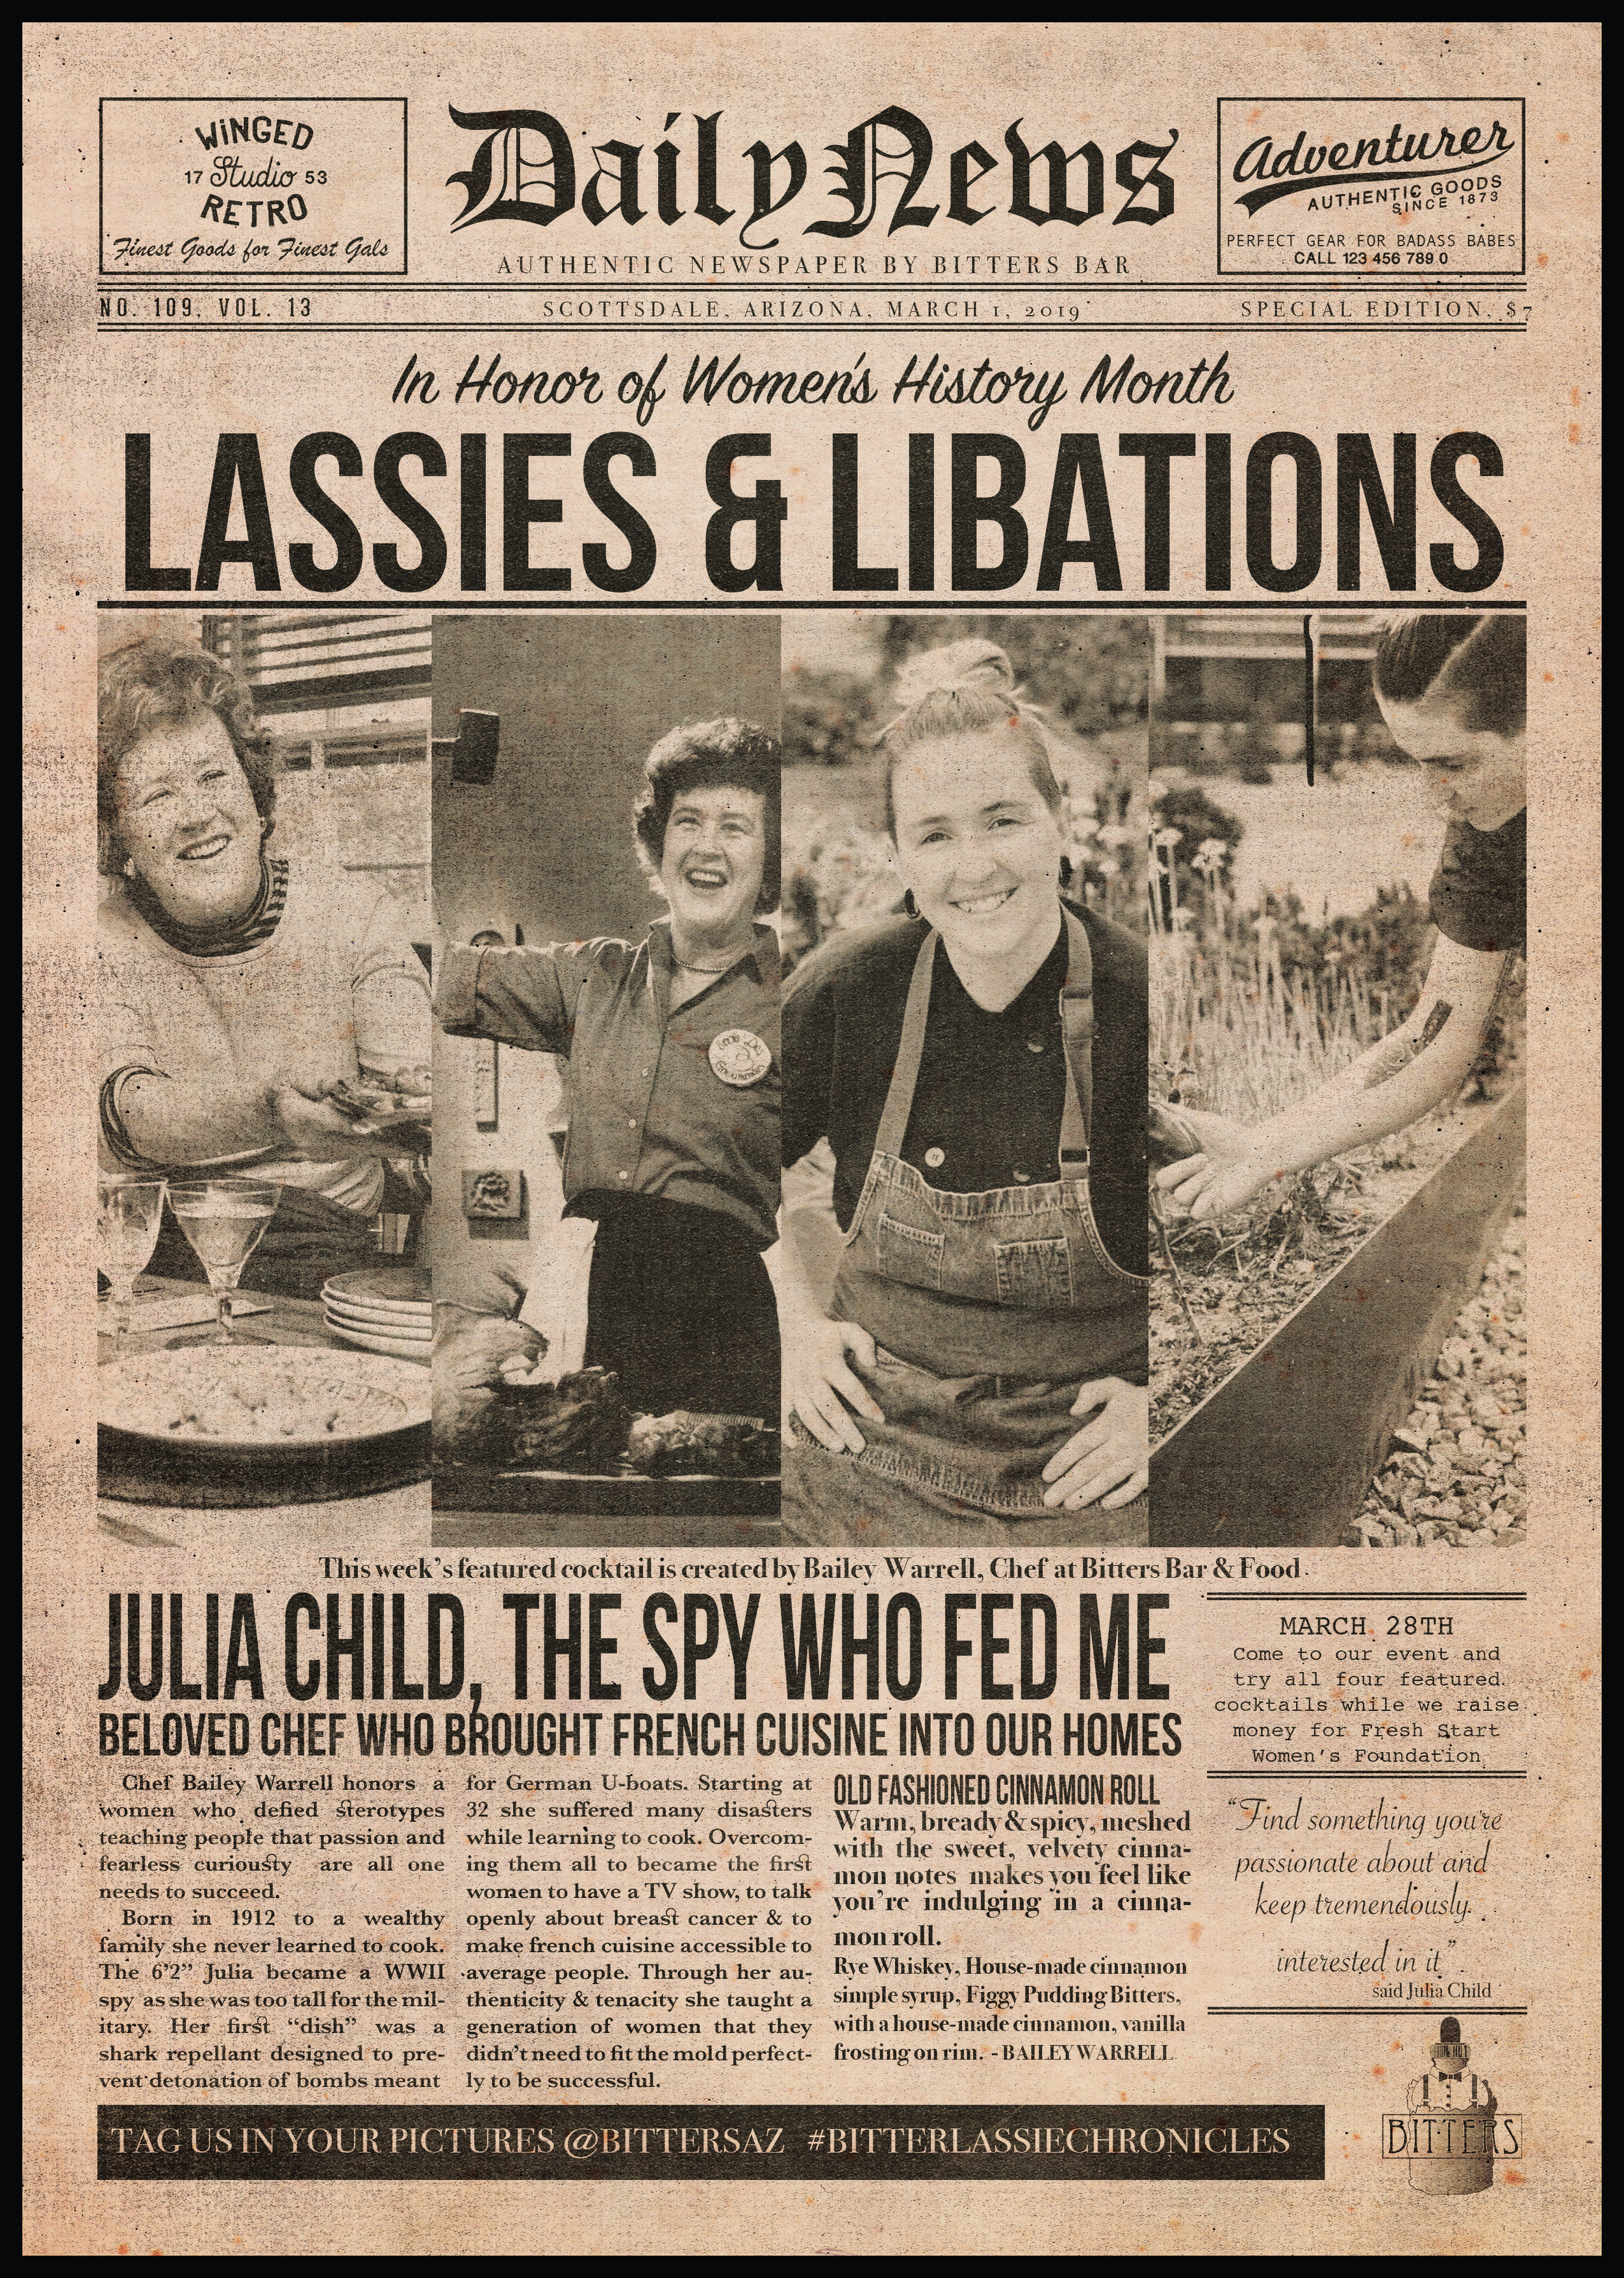 """Week two """"newspaper"""" featuring Julia Child, Chef Bailee Warrell and the Cinnamon Roll Old Fashioned."""